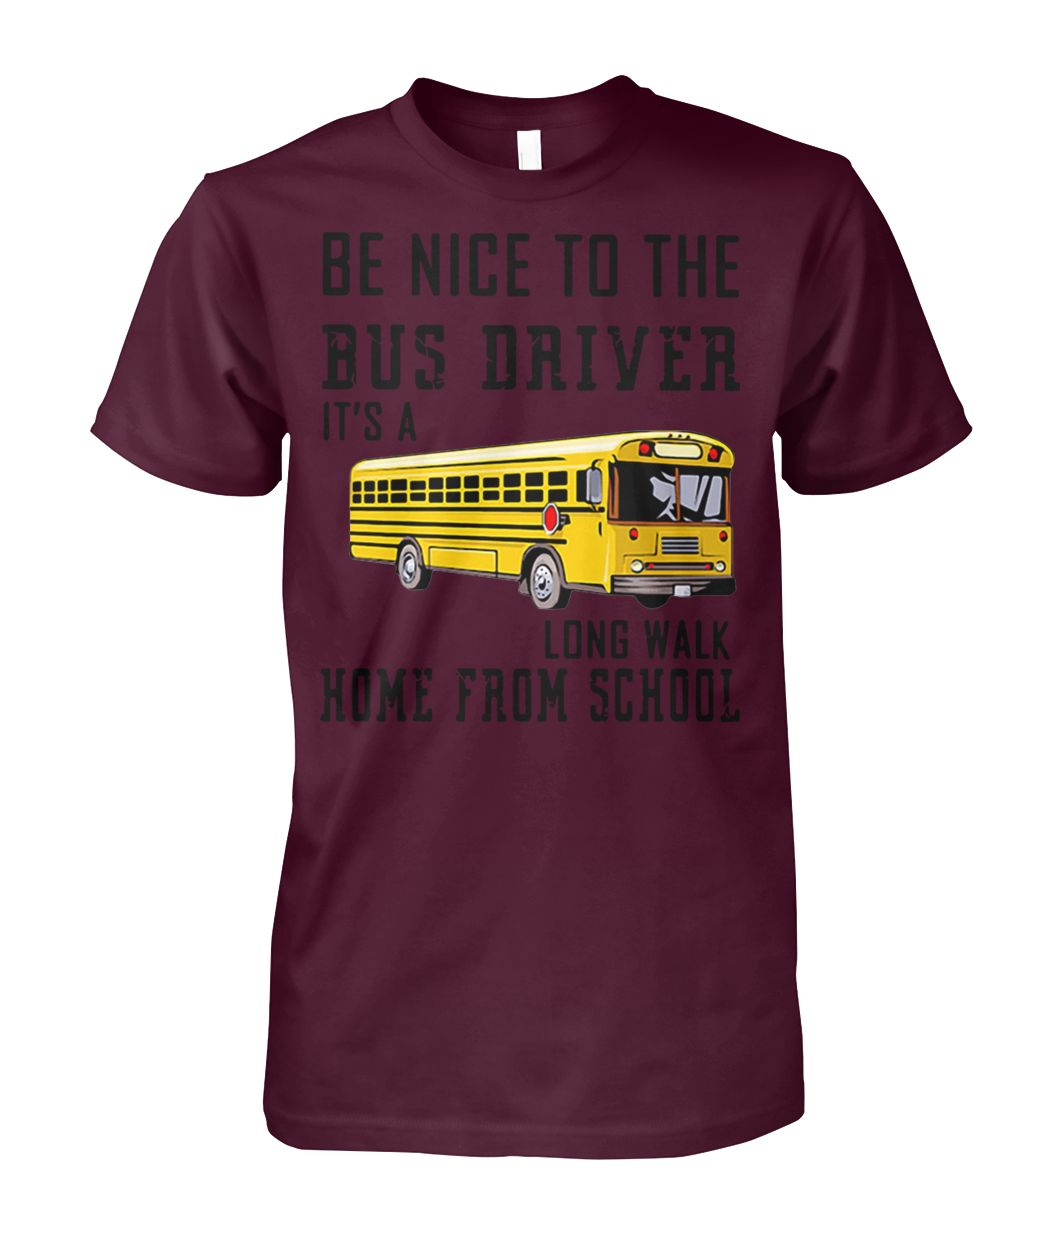 [Hot version] Be nice to the bus driver it's a long walk home from school shirt